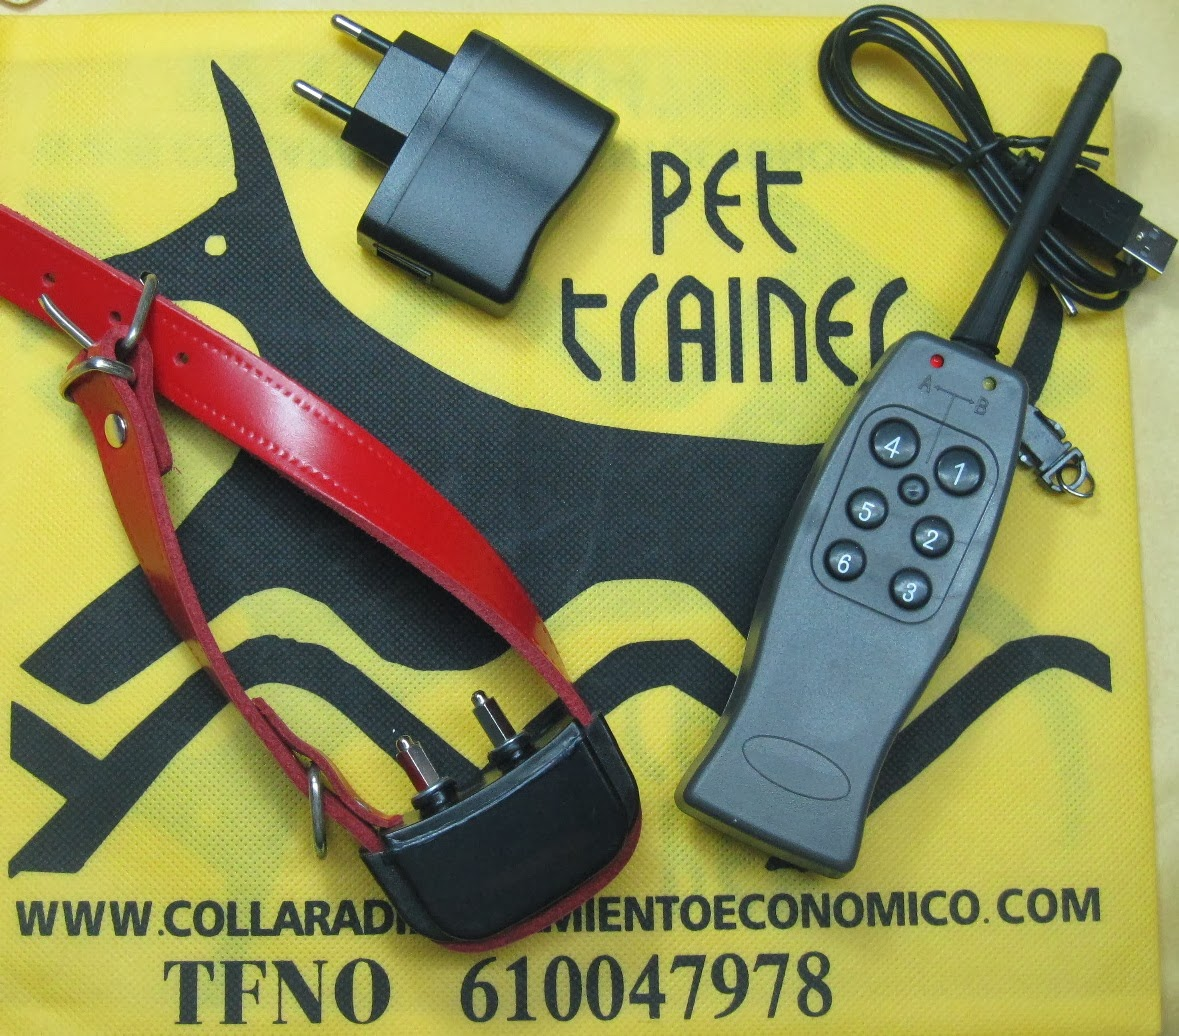 PET TRAINER  Nº2 PLUS RECARG (SIMPLE) 50€